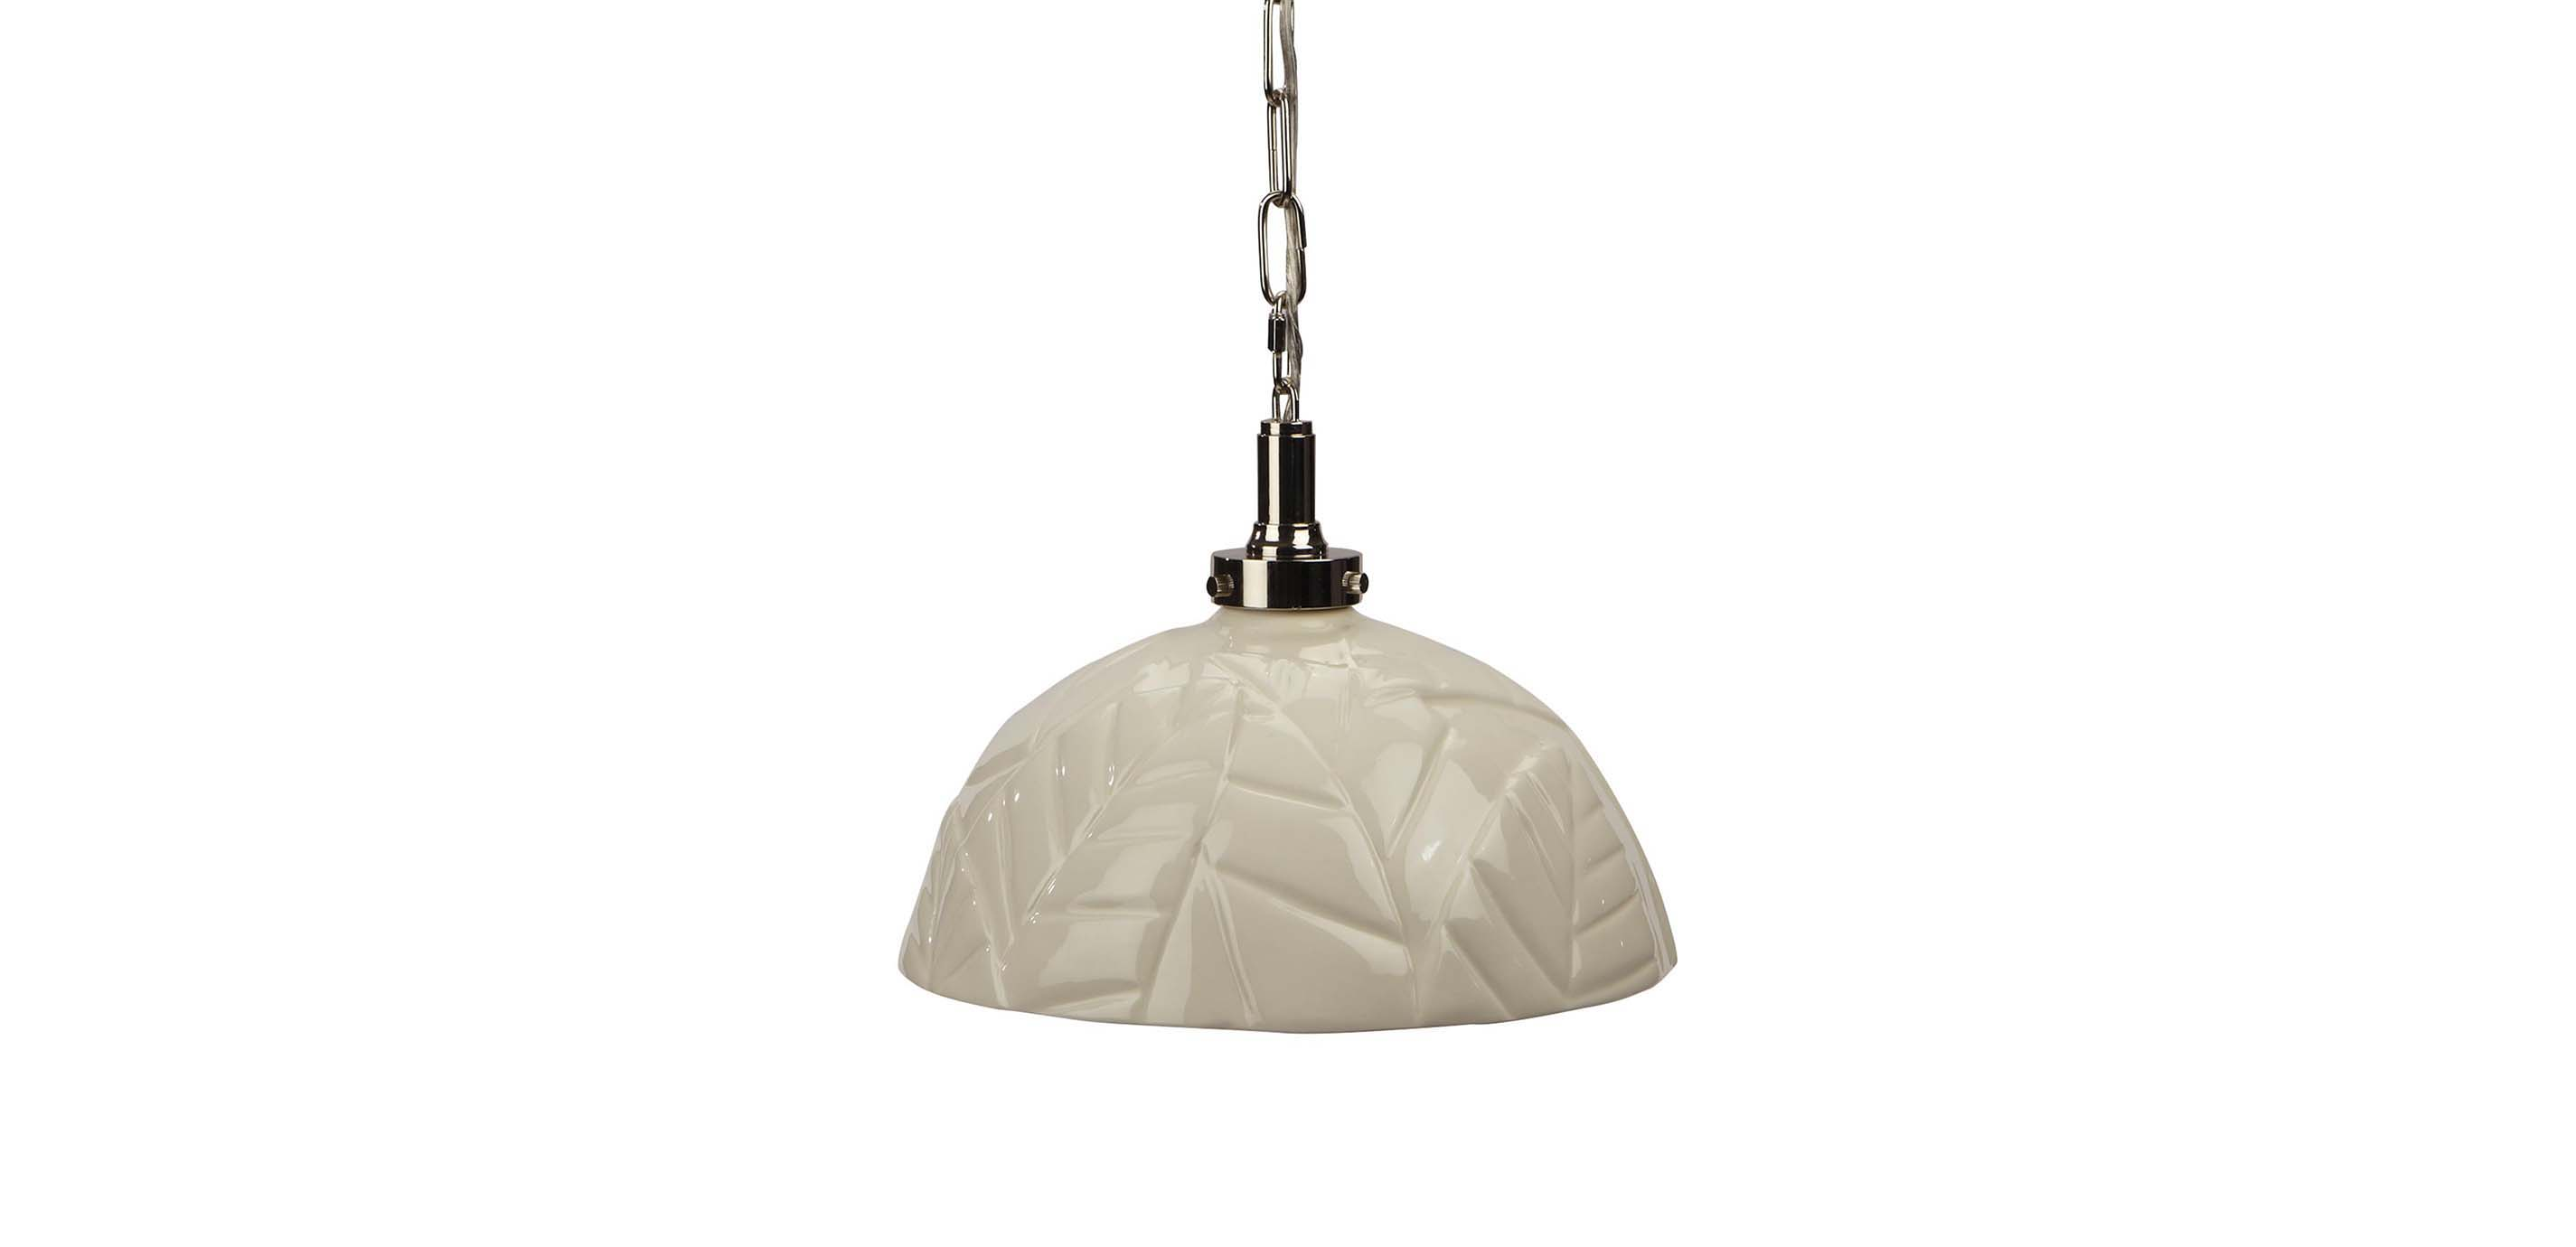 Small embossed leaf pendant lighting ethan allen images small embossed leaf pendant largegray arubaitofo Gallery